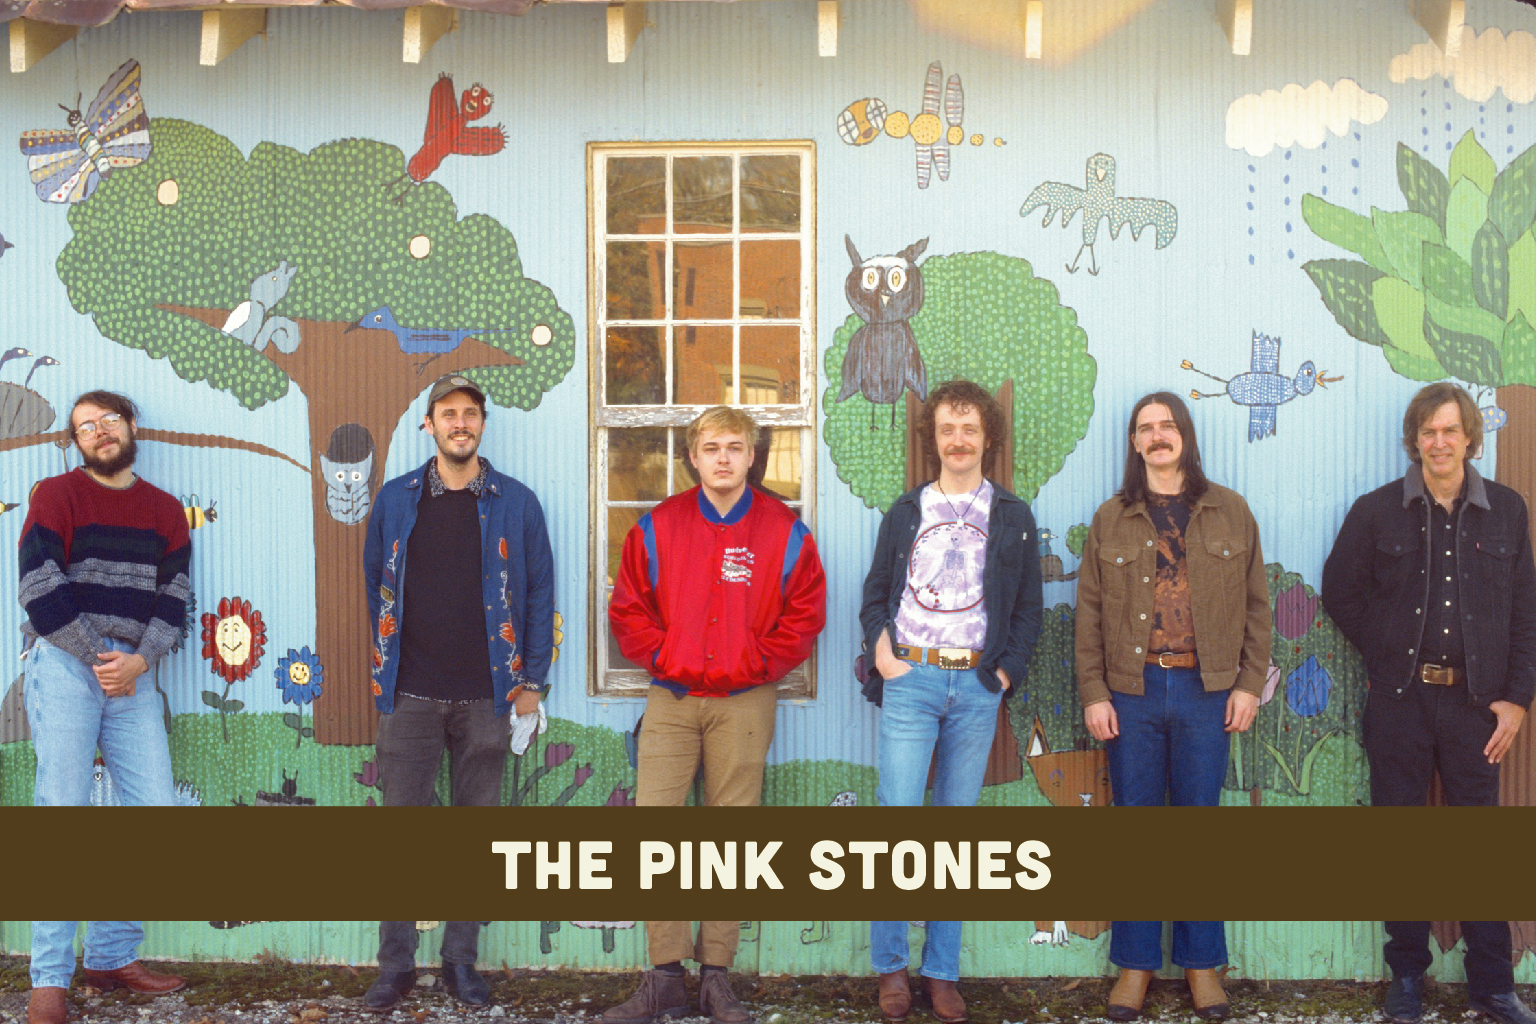 The Pink Stones